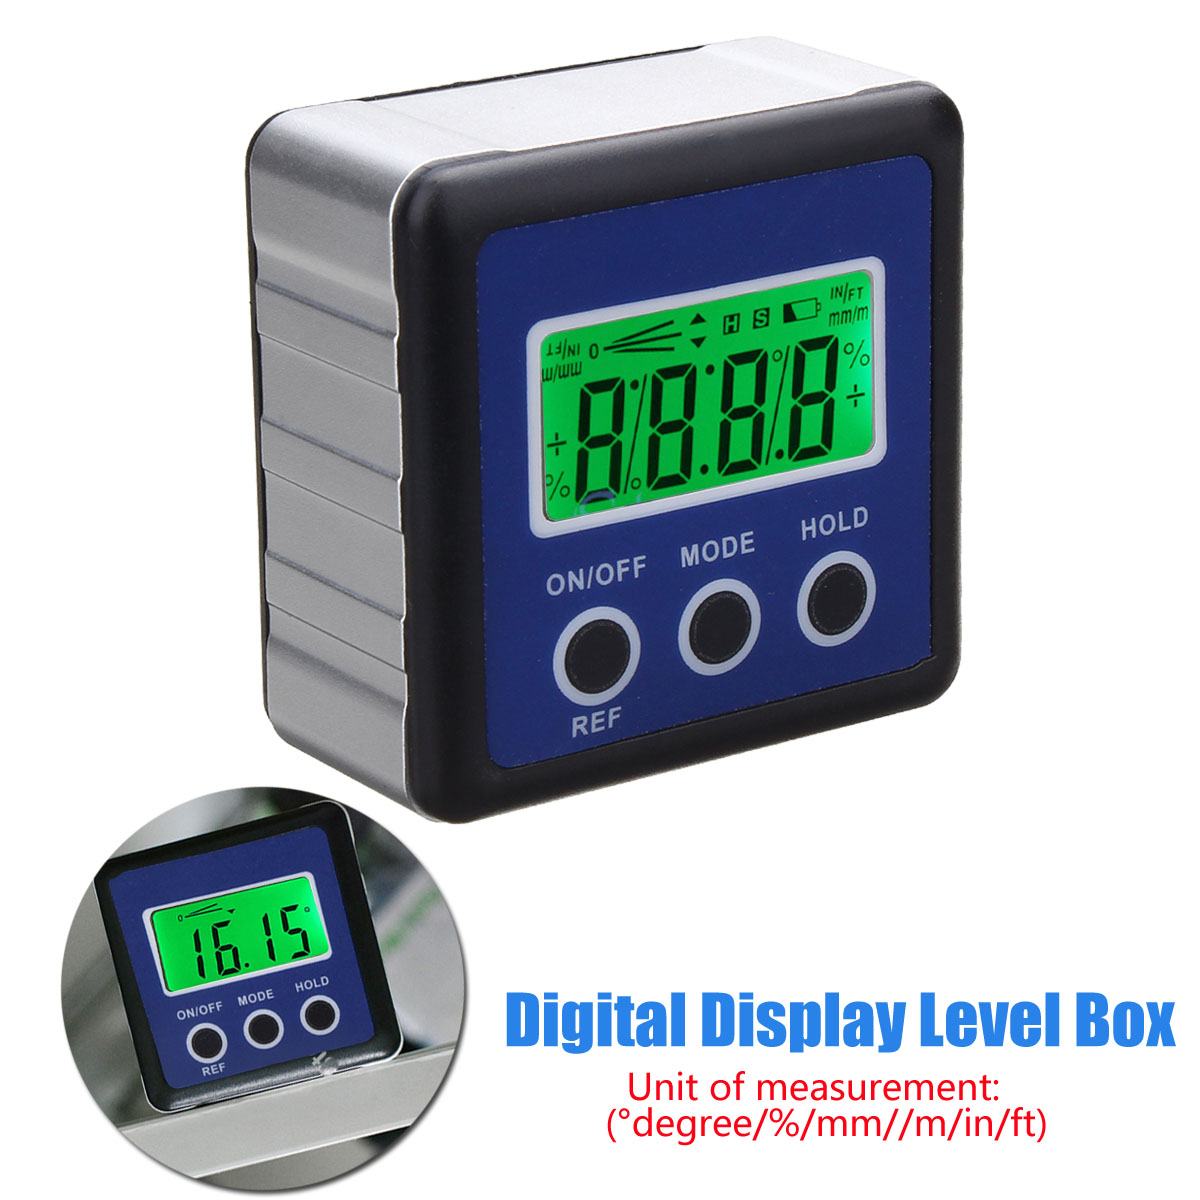 Digital LCD Display Box Gauge Angle Protractor Level Inclinometer Magnetic Base Declinometer For Level Measuring Instruments dmi100 1 4 lcd screen digital level bevel gauge box inclinometer